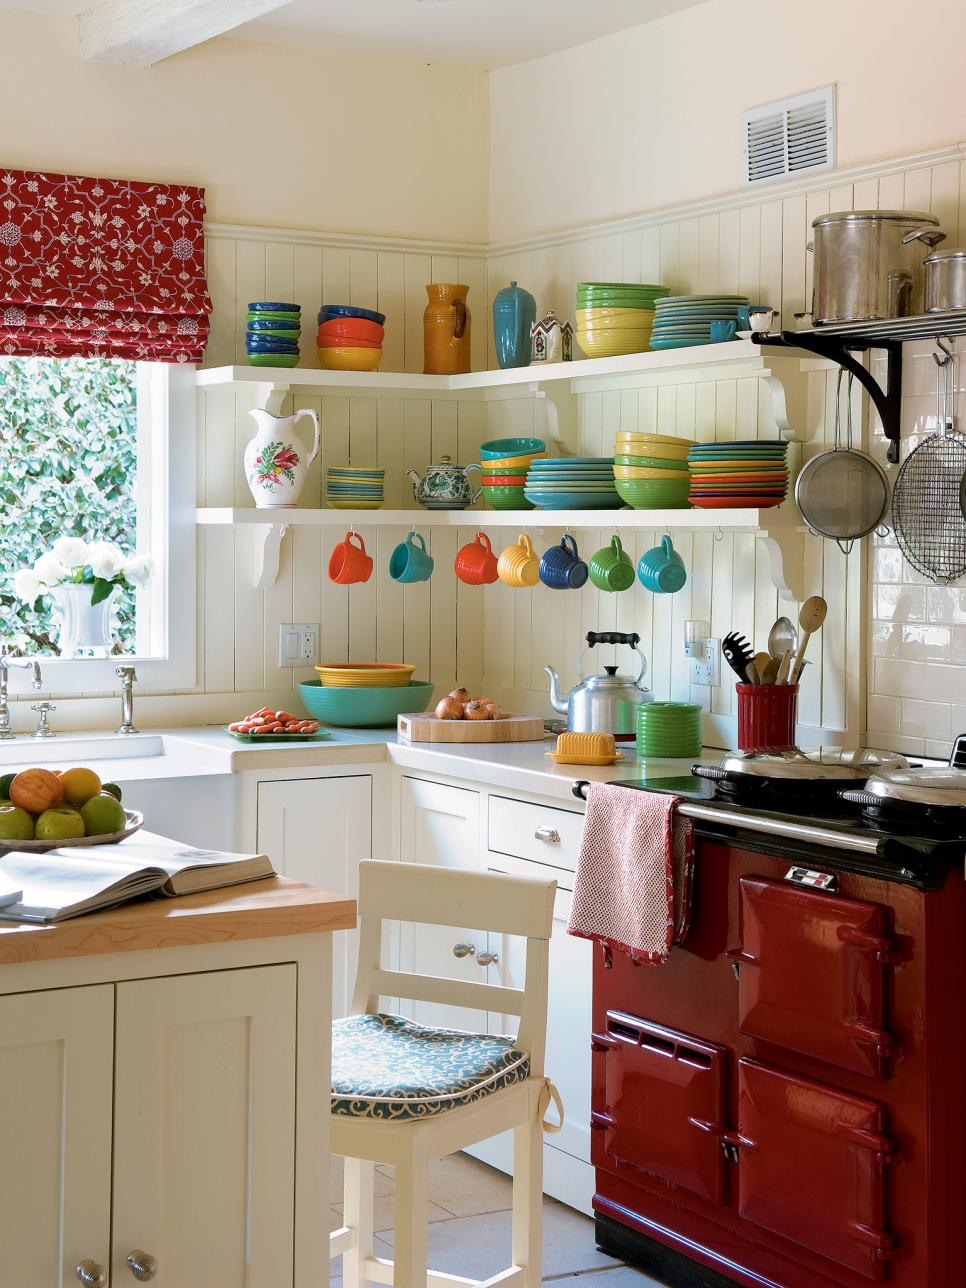 pictures of small kitchen design ideas from hgtv hgtv - Kitchen Design Ideas Photos